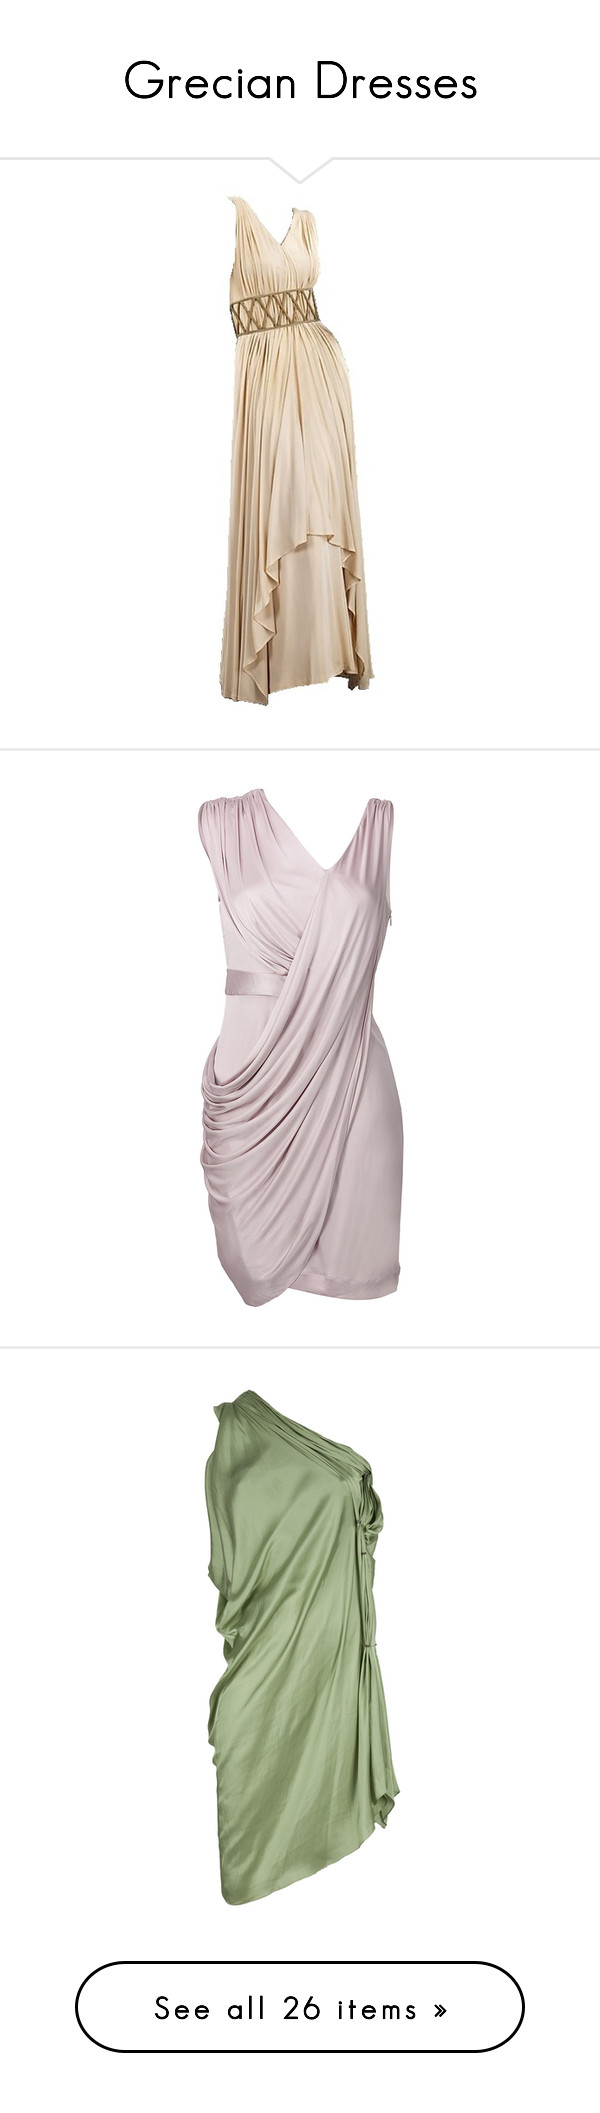 """""""Grecian Dresses"""" by stolencarradio ❤ liked on Polyvore featuring dresses, gowns, long dresses, vestidos, short dresses, vestiti, abiti, pink dress, knee length cocktail dresses and short fitted dresses"""